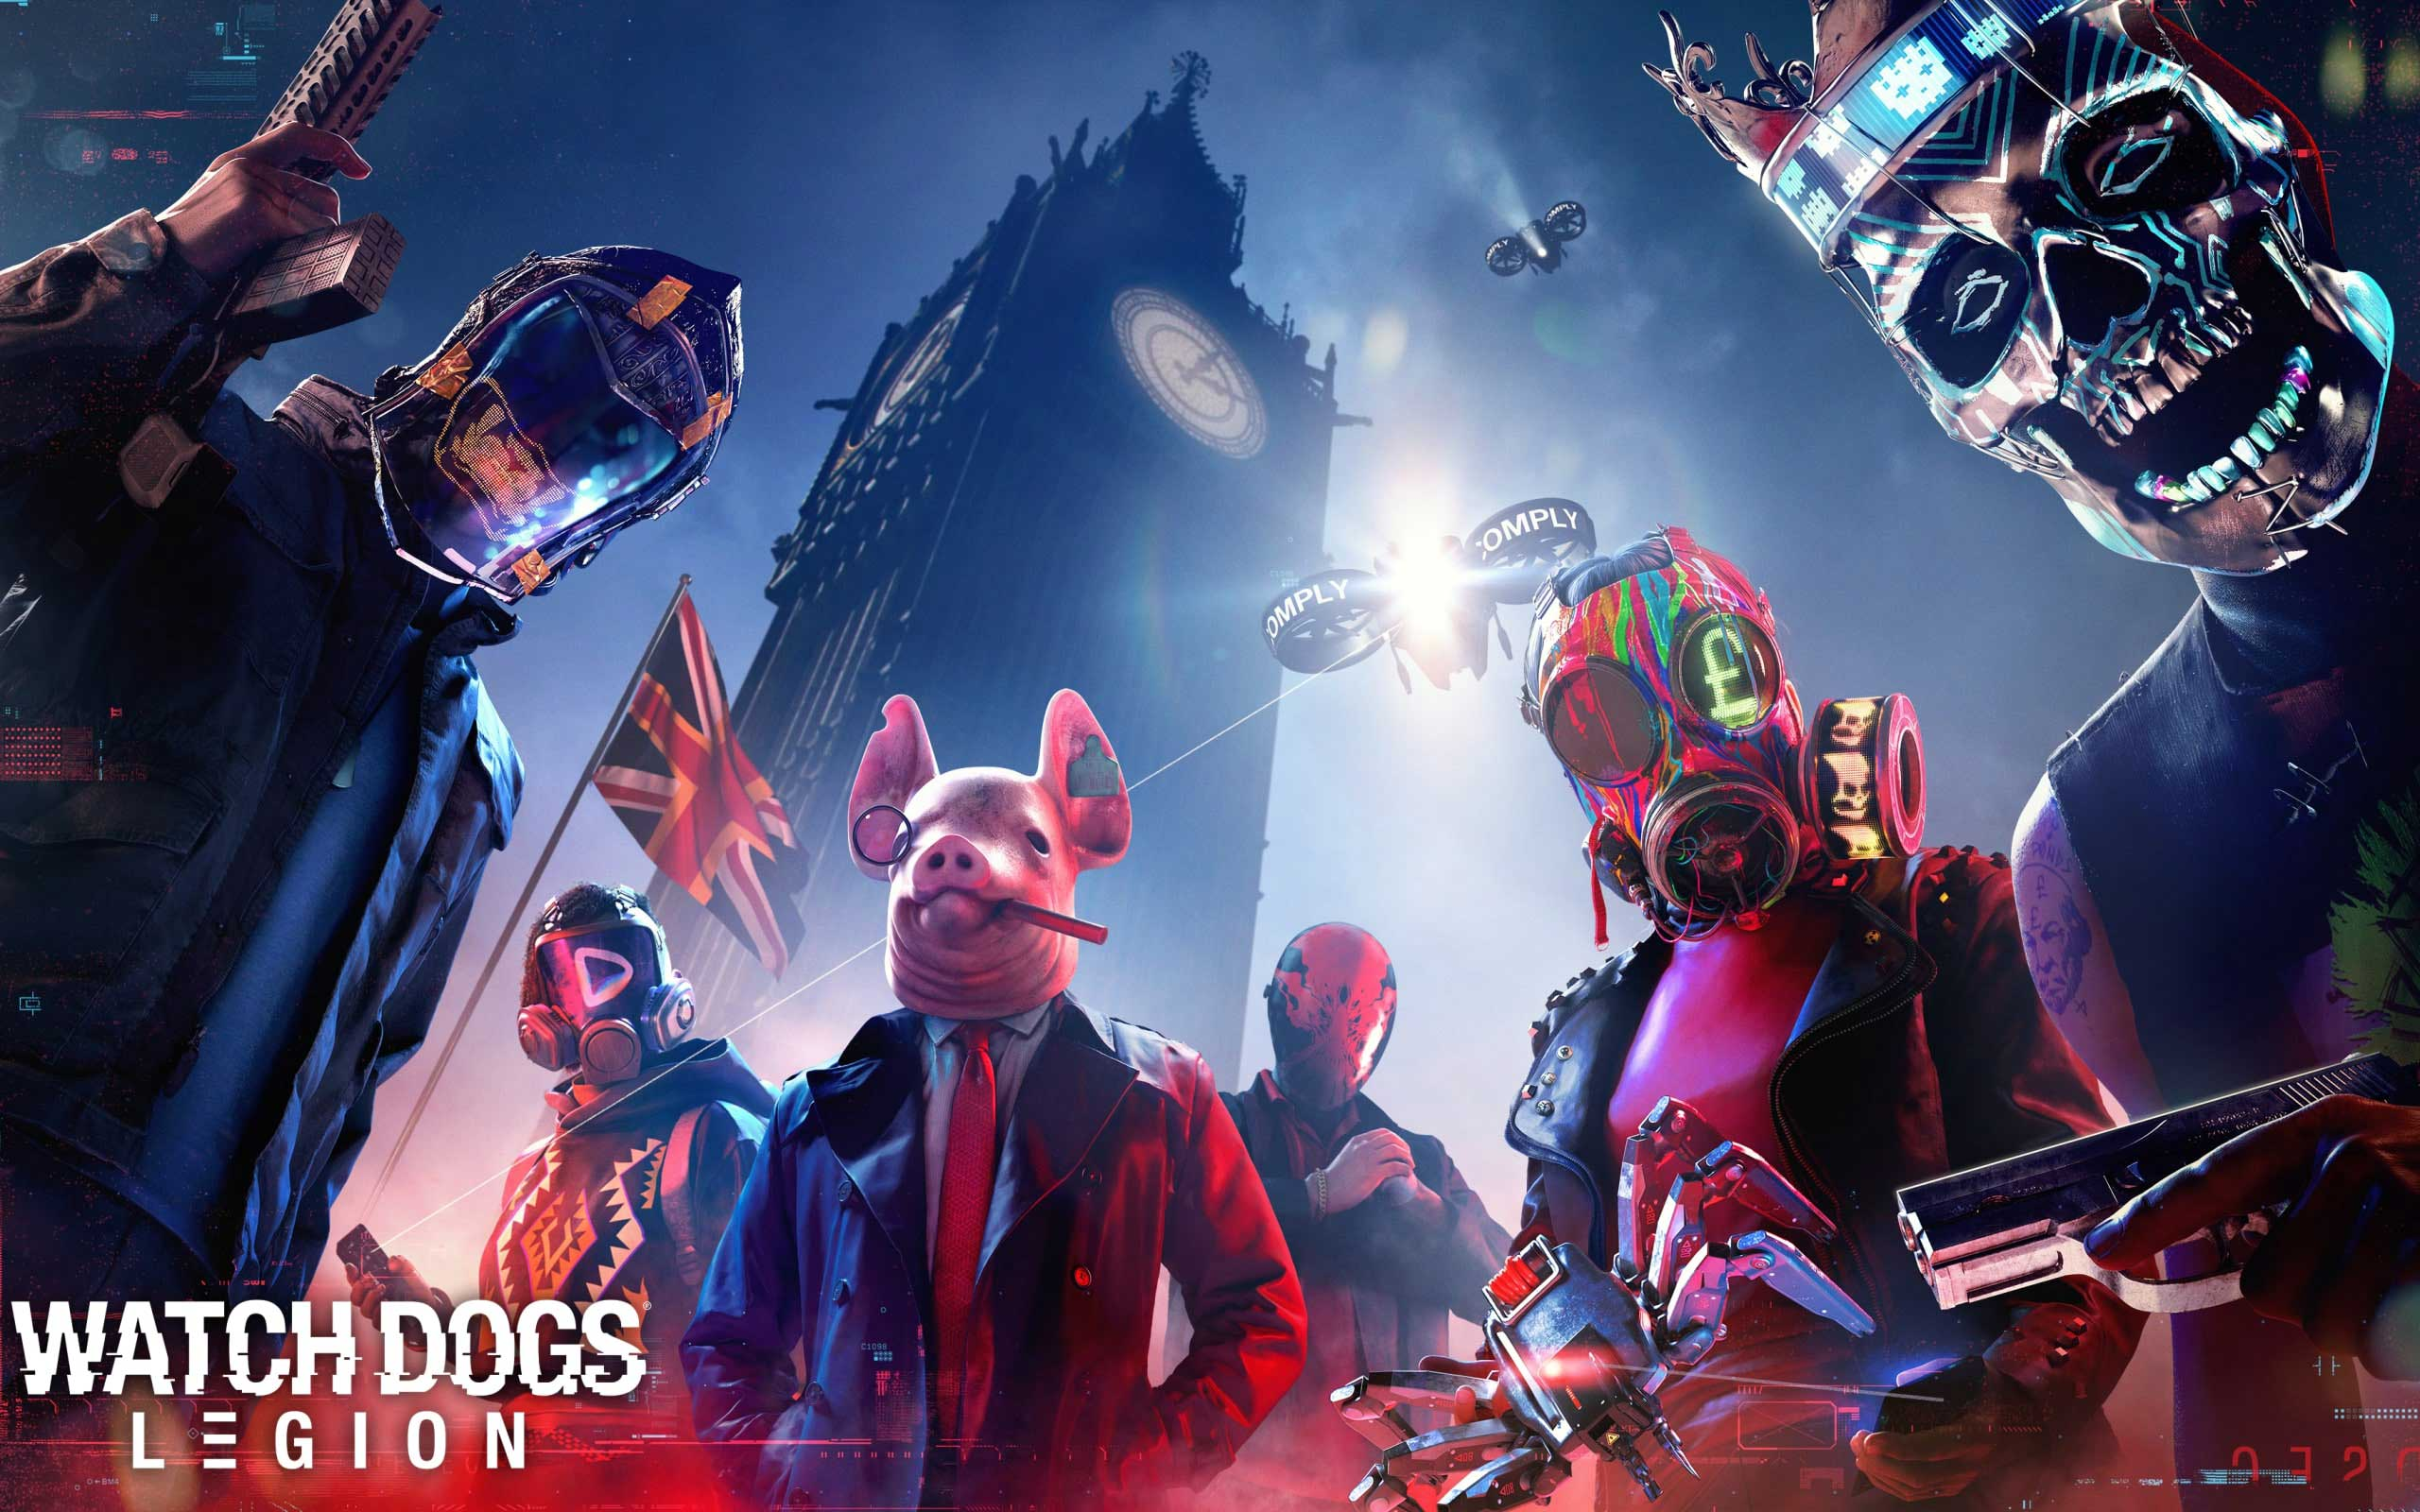 Watch Dogs Legion poster